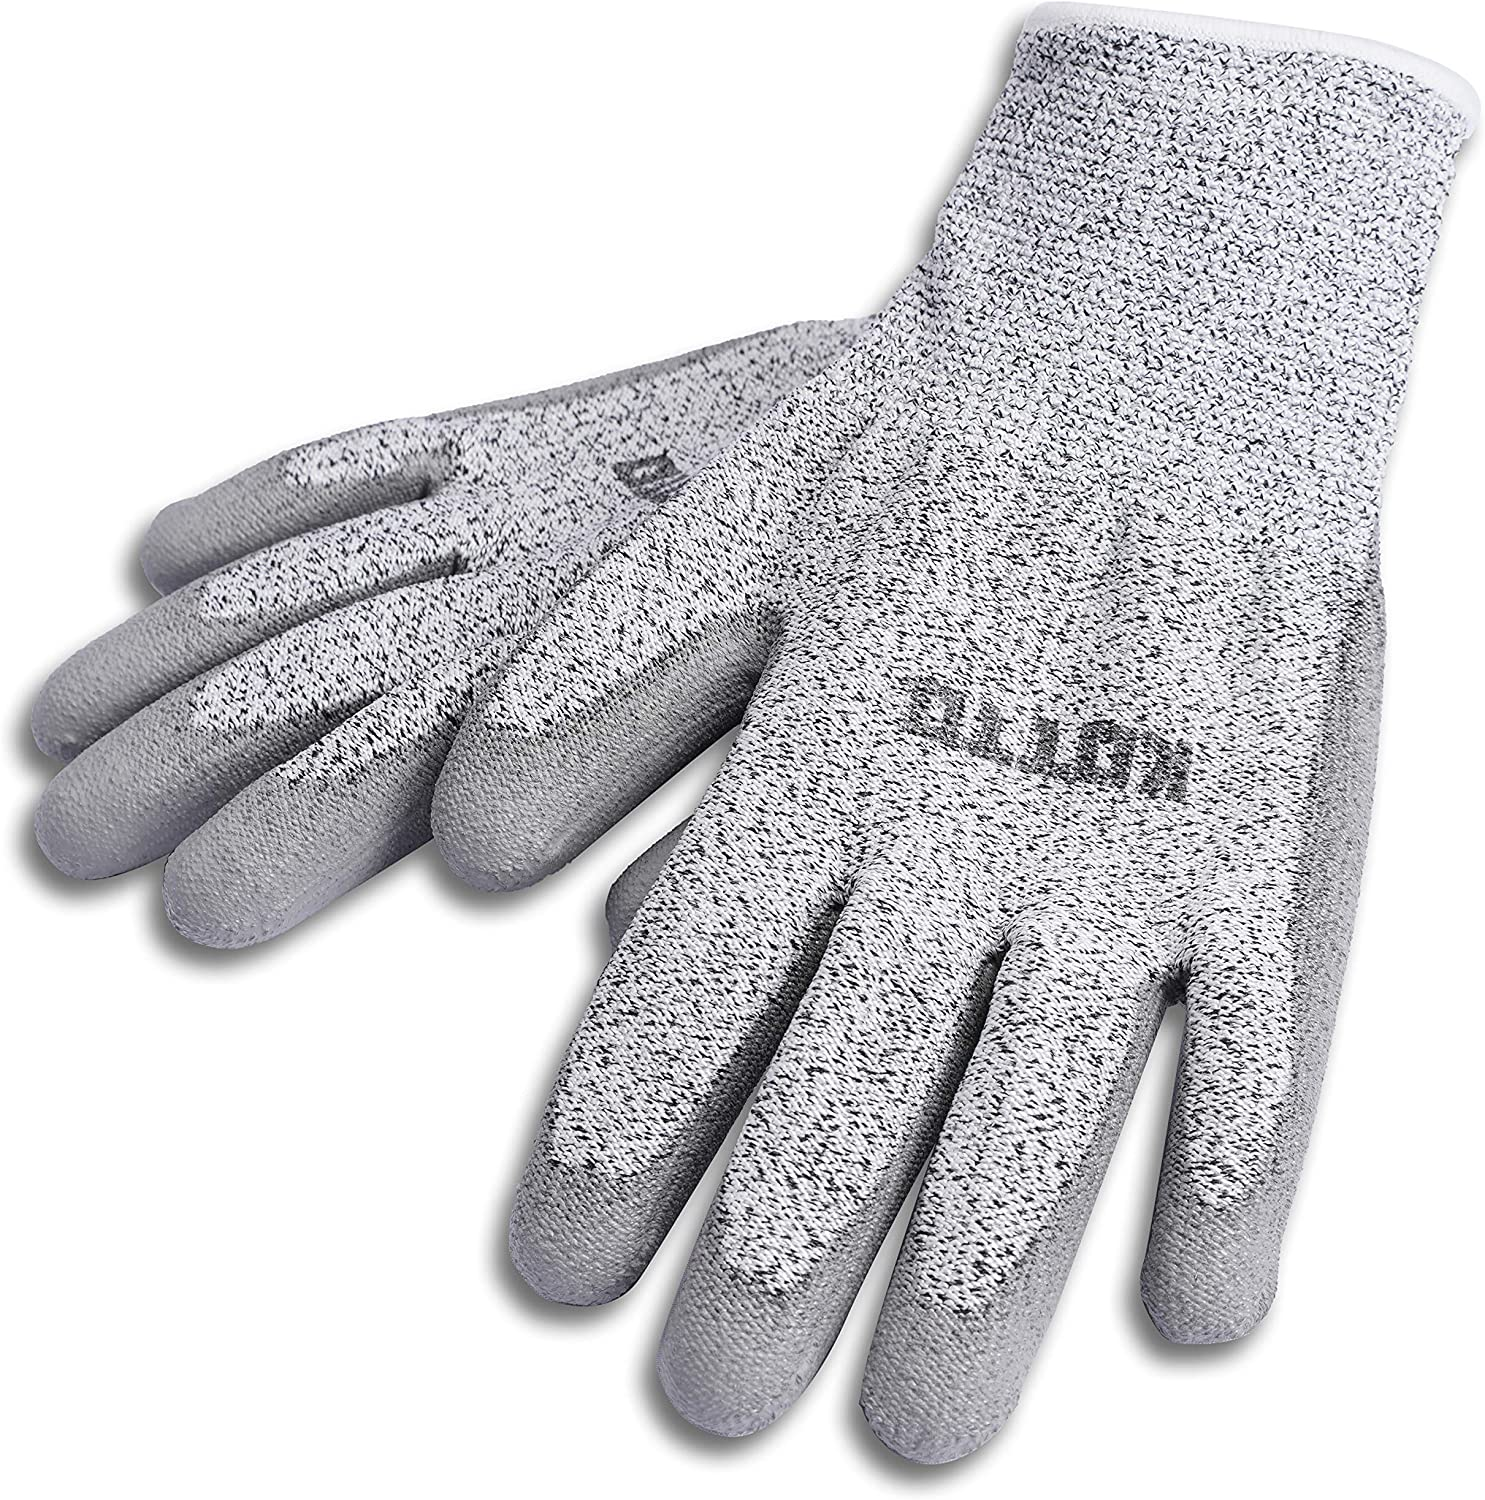 KOTTO Gardening Gloves 2 Pairs Breathable Rubber Coated Garden Gloves, Waterproof Outdoor Protective Work Gloves Extra Large Size fits Most Men Women, Grey, XL